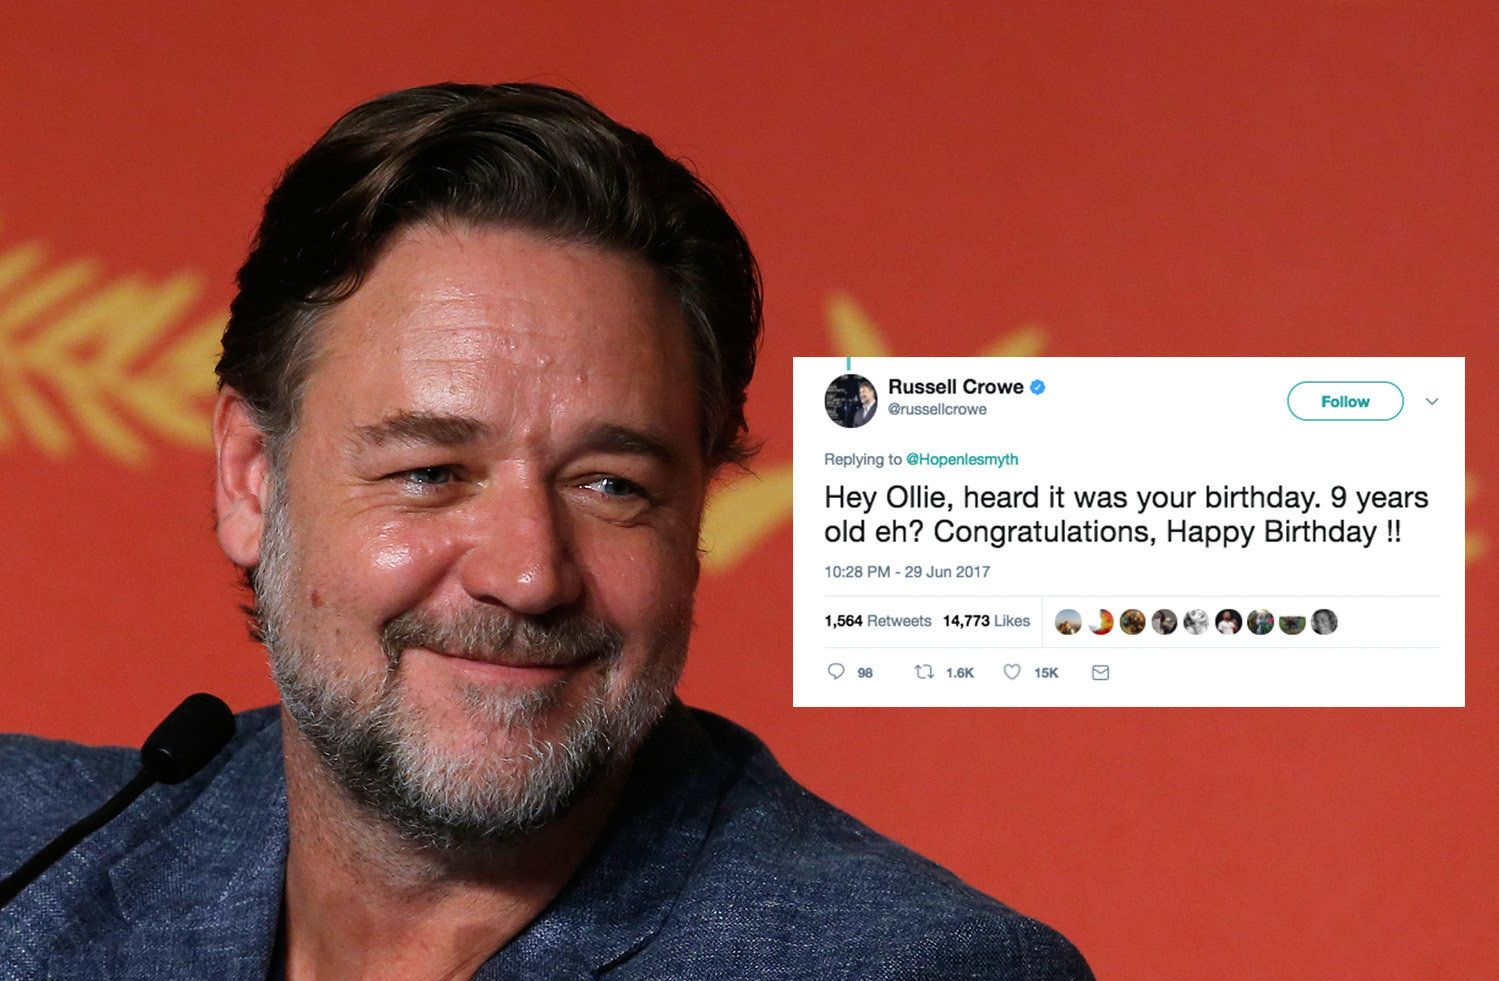 Actor Russell Crowe is among the celebrities who have joined forces to wish a 9-year-old boy a happy birthday via Twitter.